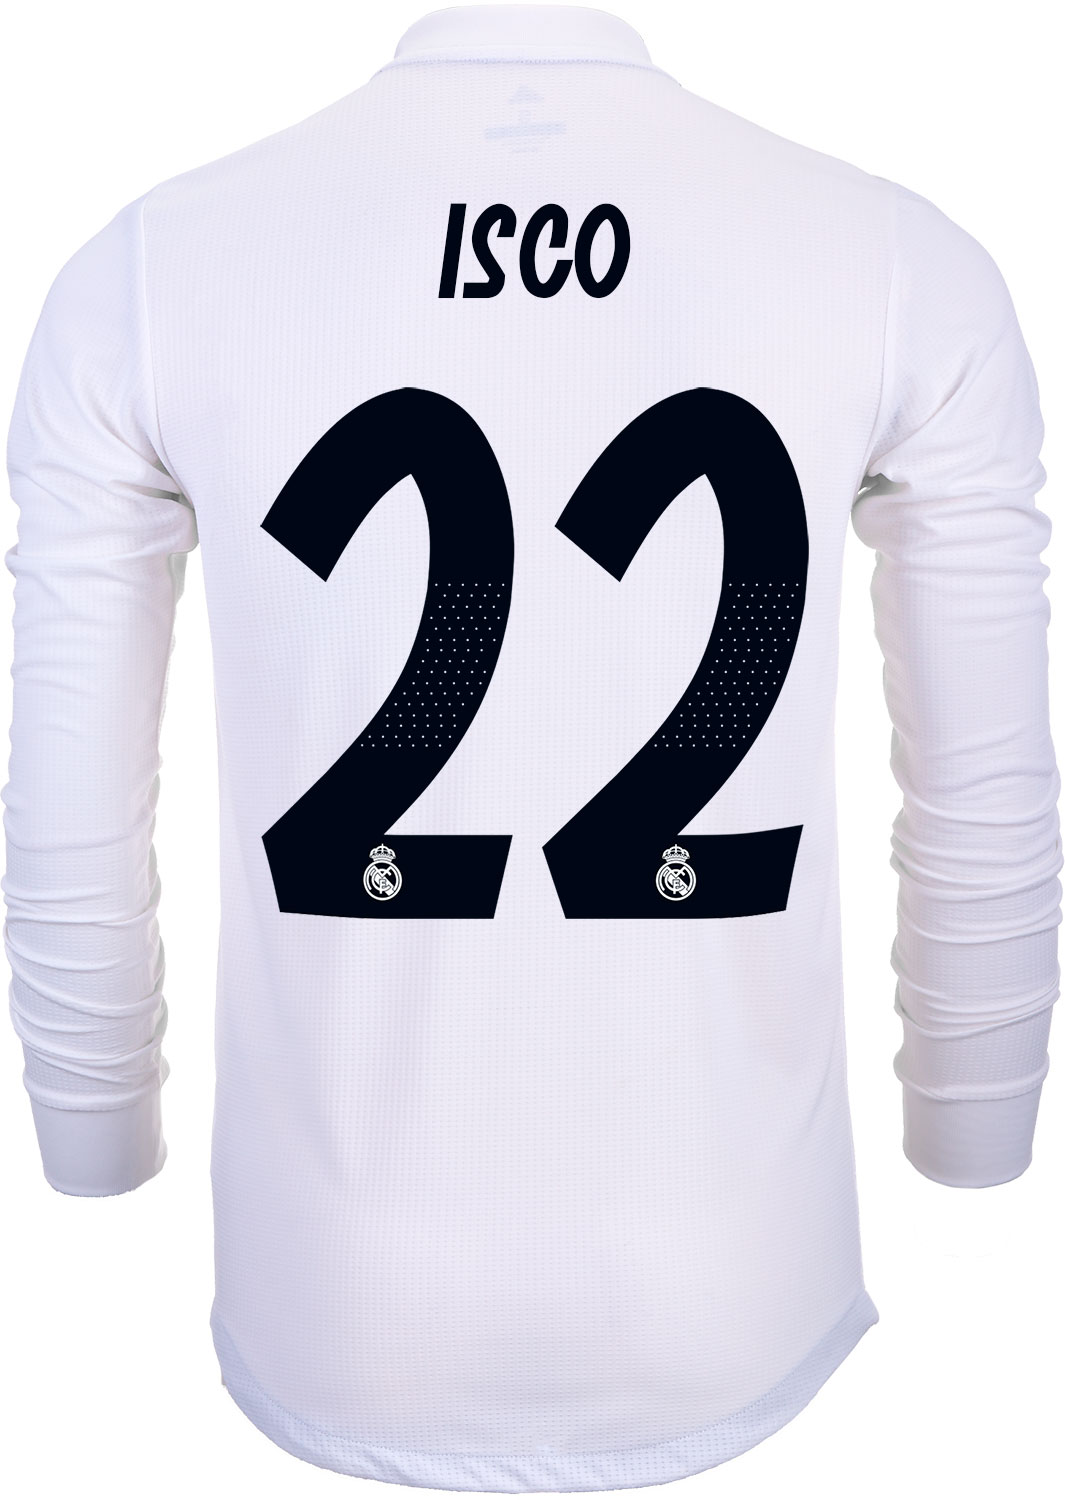 8e904dd93 adidas Isco Real Madrid Home Authentic L S Jersey 2018-19 - SoccerPro